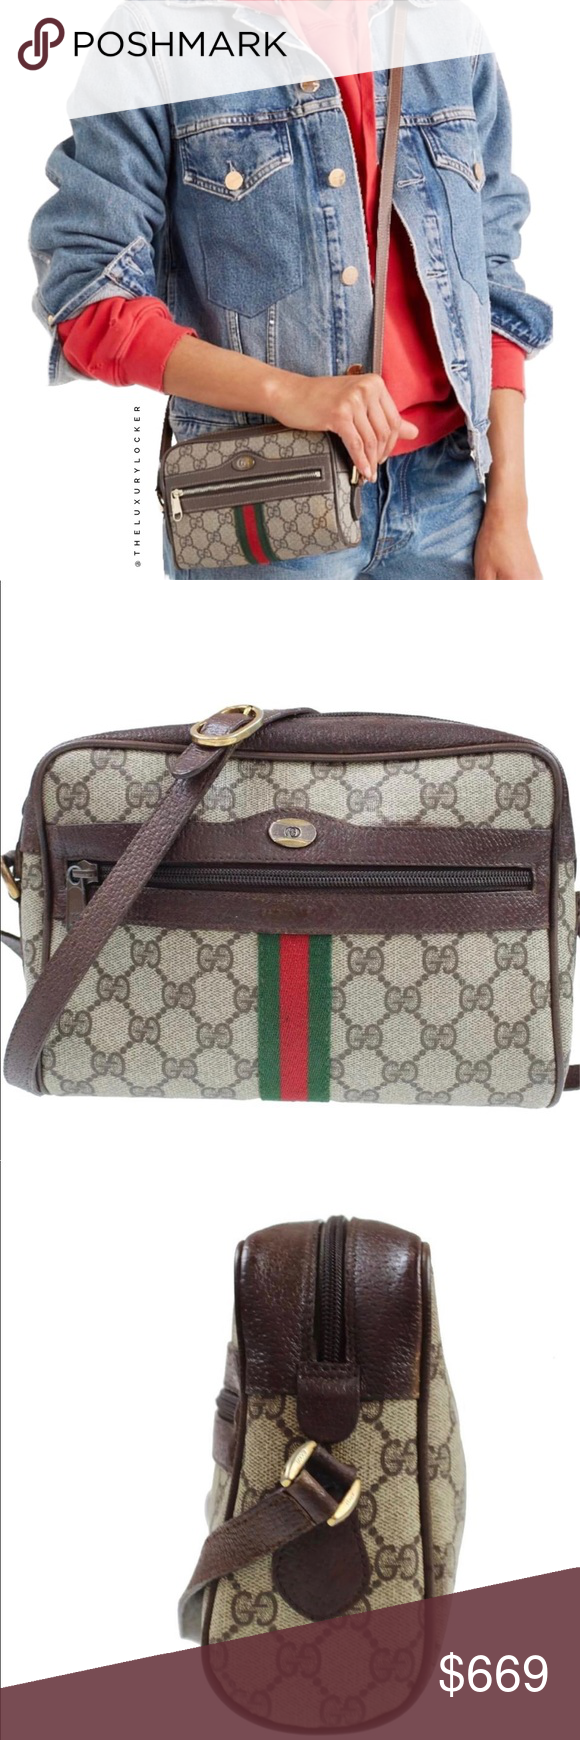 8a7063652f77e2 GUCCI GG WEB OPHIDIA STYLE CAMERA BAG Beautiful vintage GUCCI supreme  camera bag with web detail